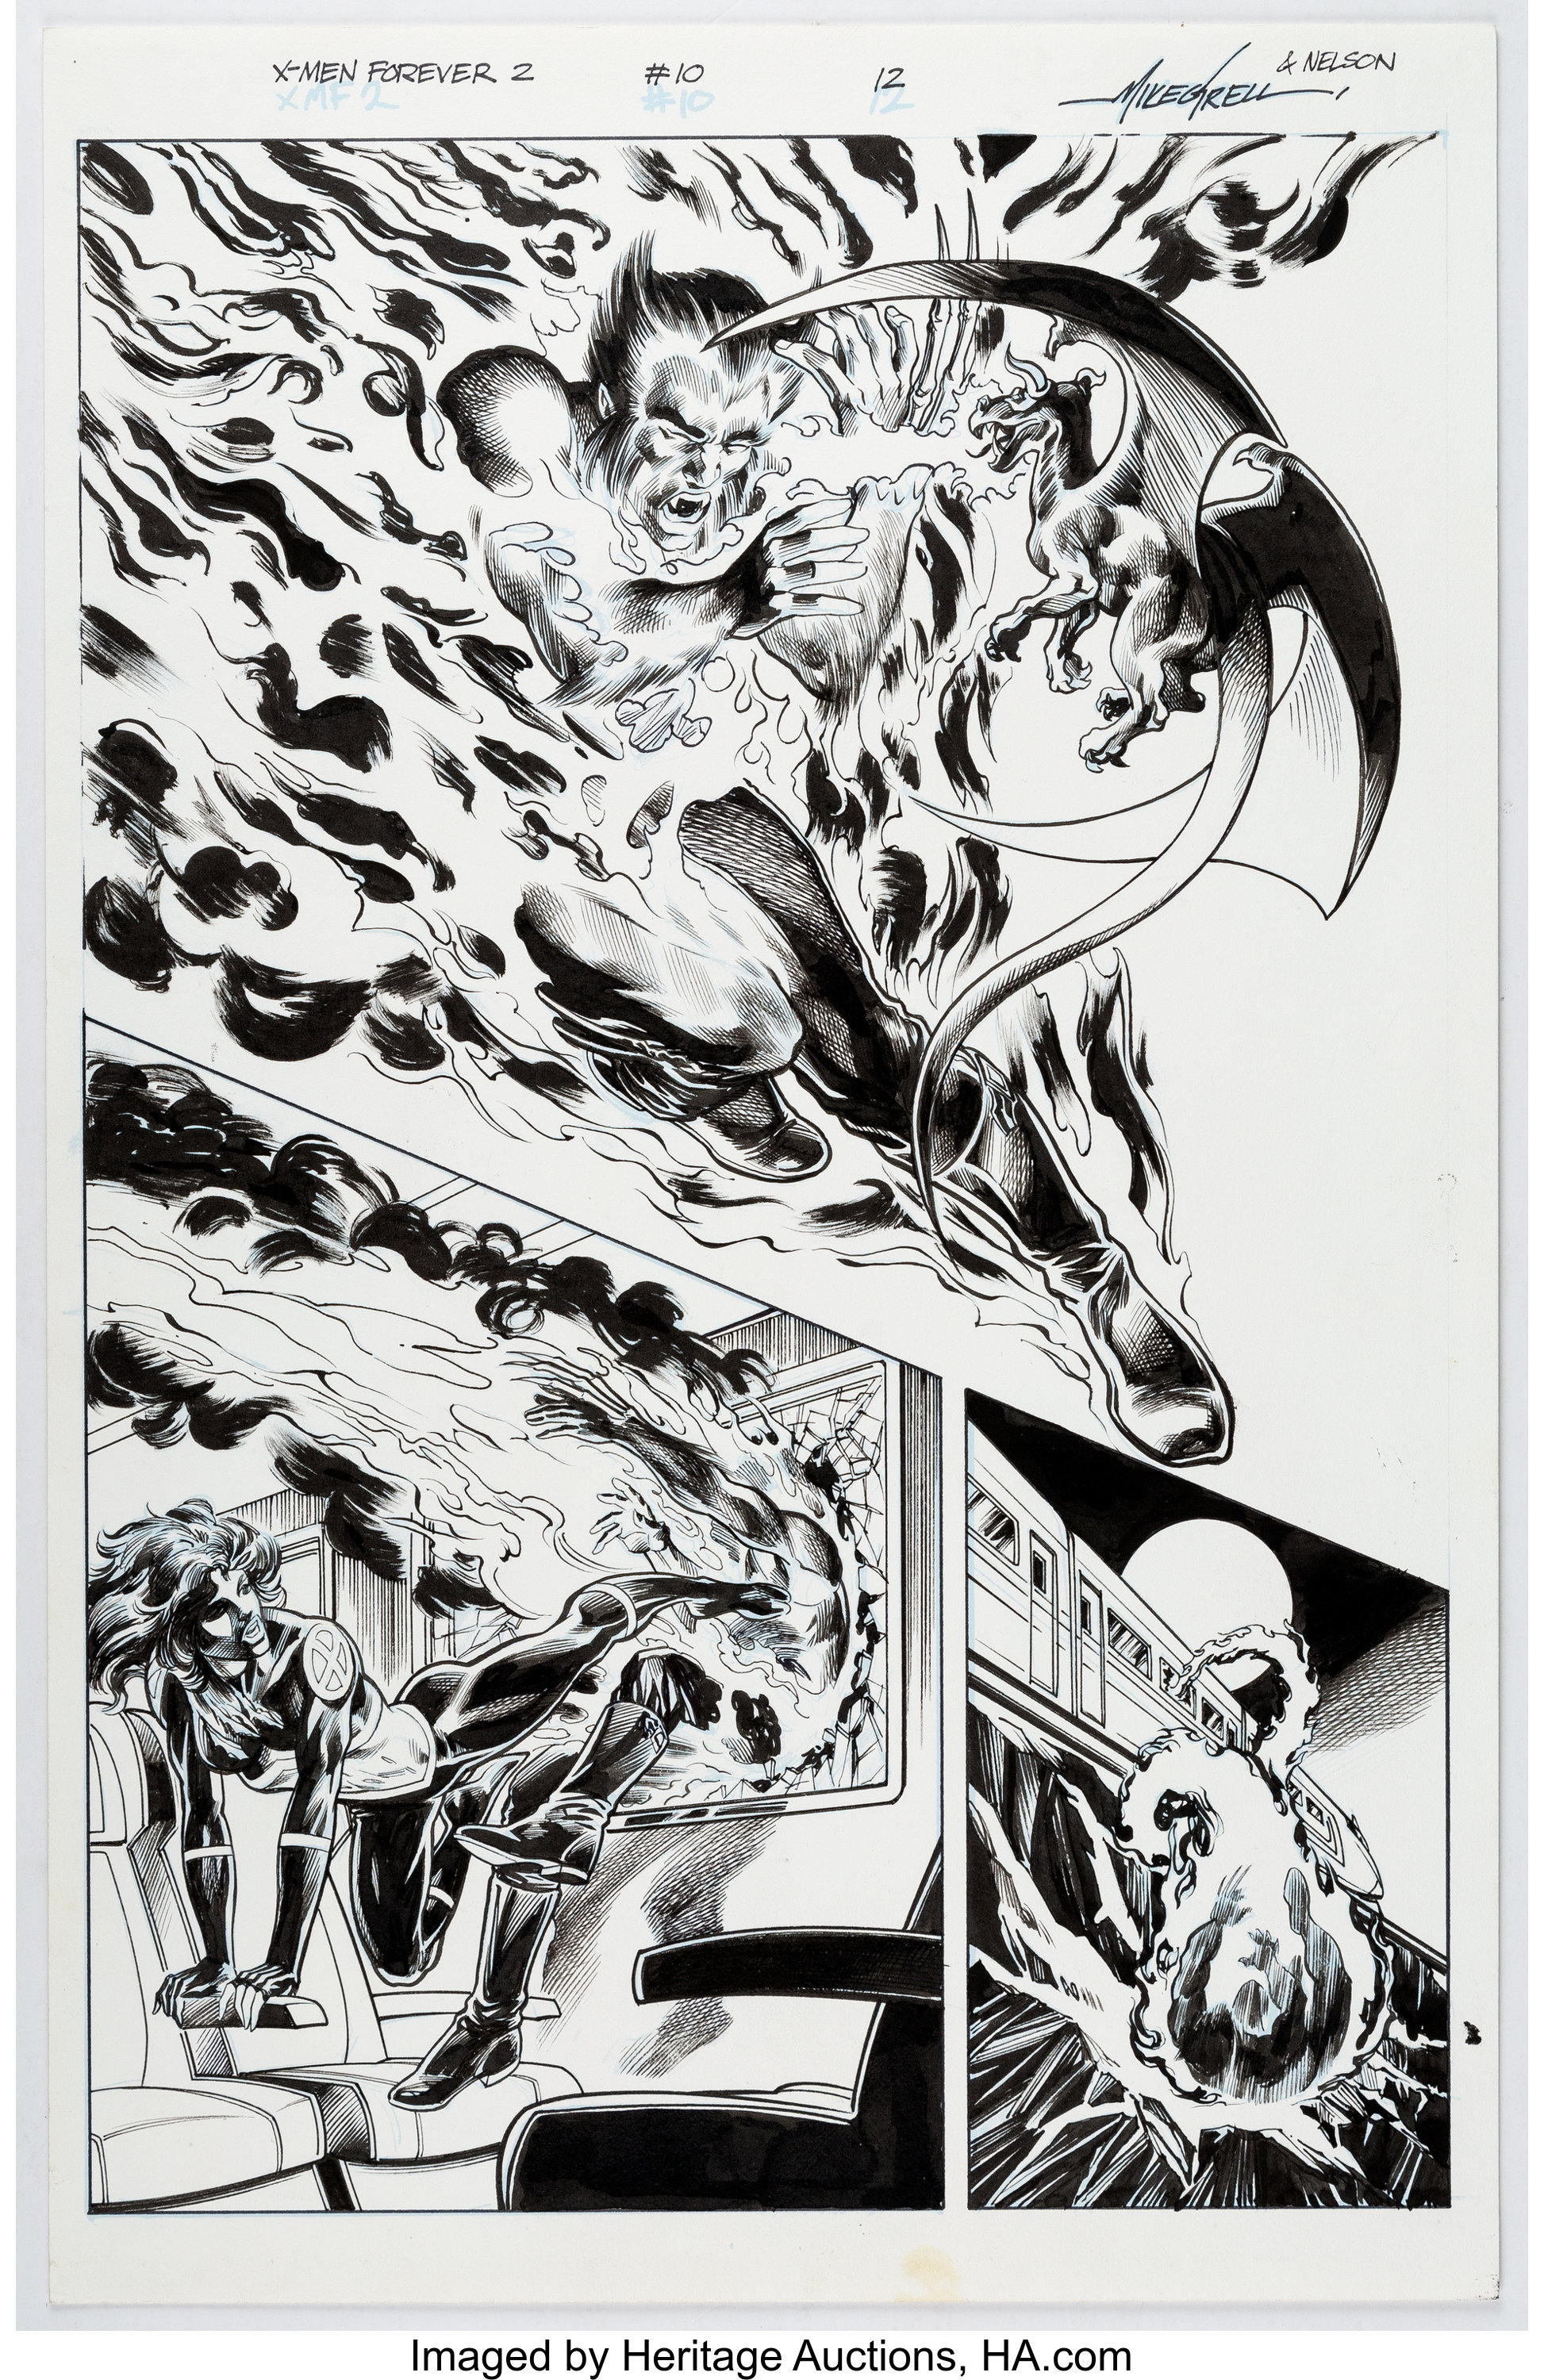 Mike Grell, Nelson, and Andre Hennessy X-Men Forever 2 #10 Story